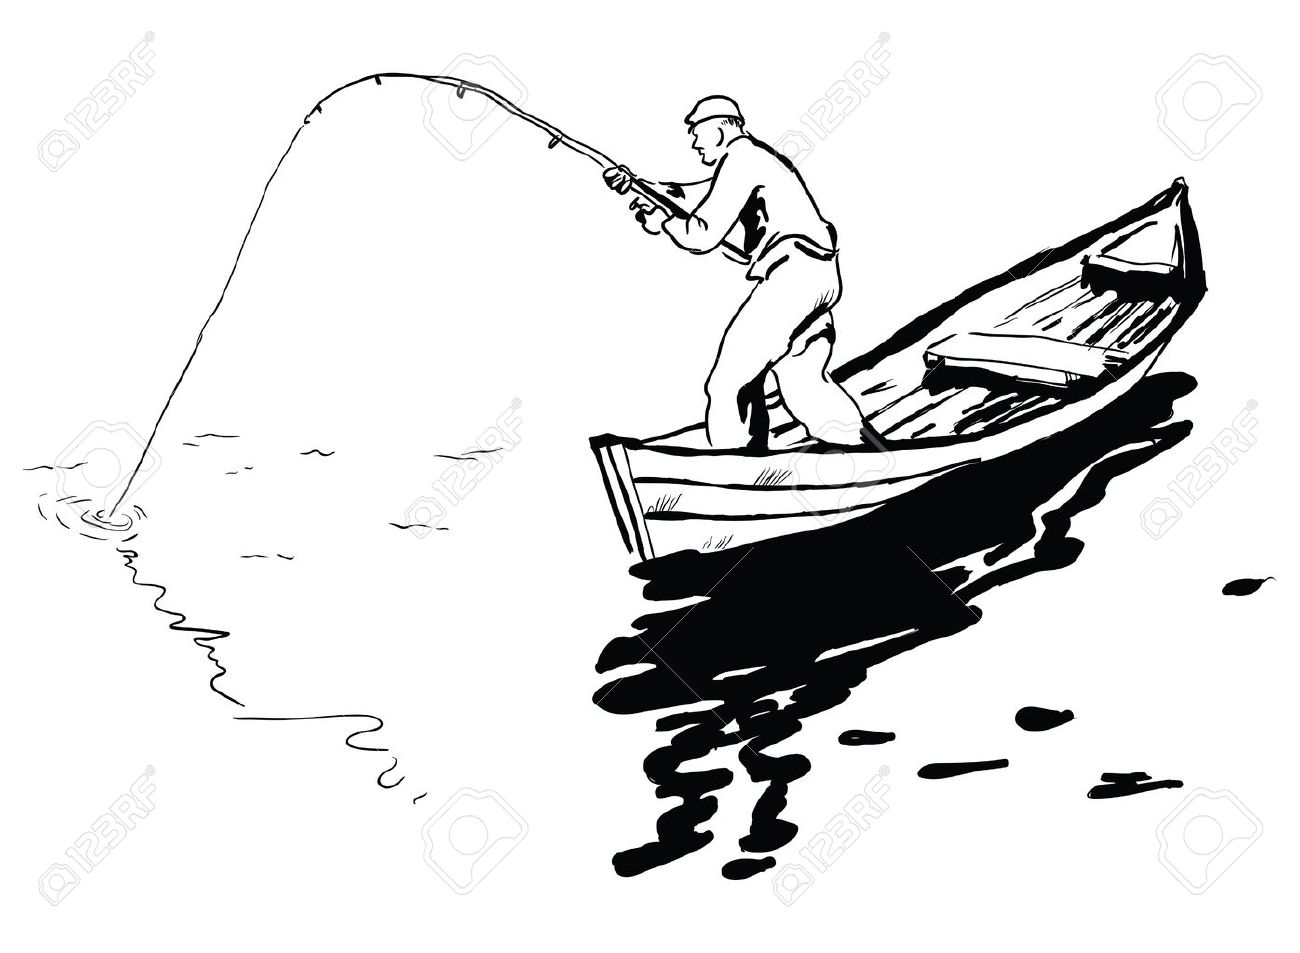 A fisherman in a boat fishing spinning reel. Vector illustration. Stock Vector - 21544278